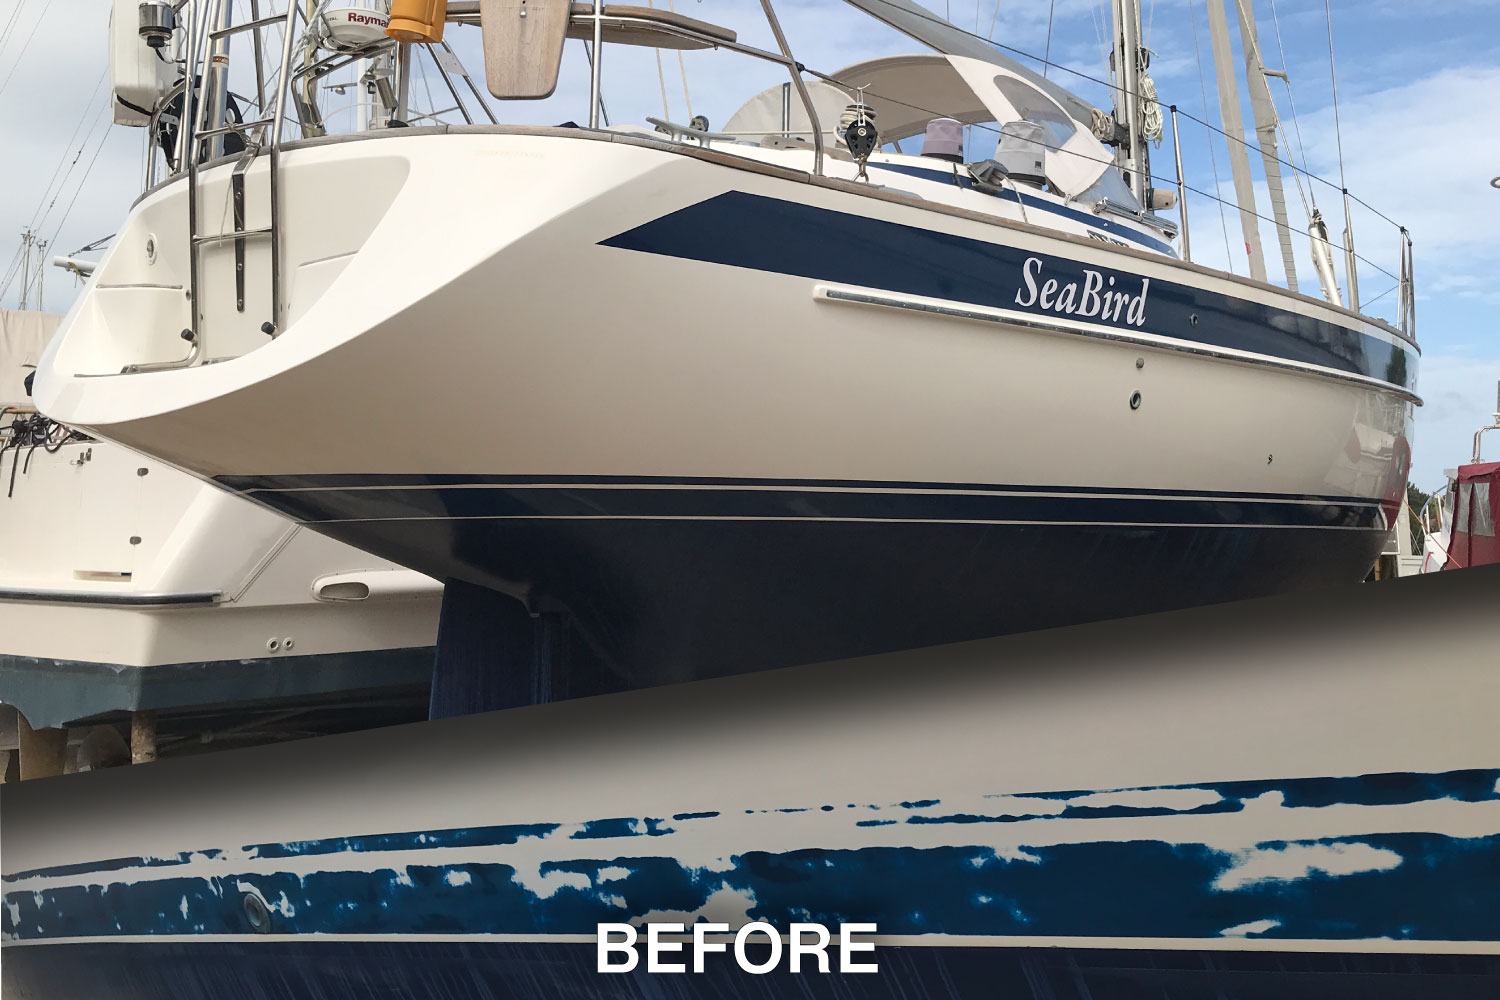 How To Repair Halberg-Rassy Cavita Stripe And Boot Stripes